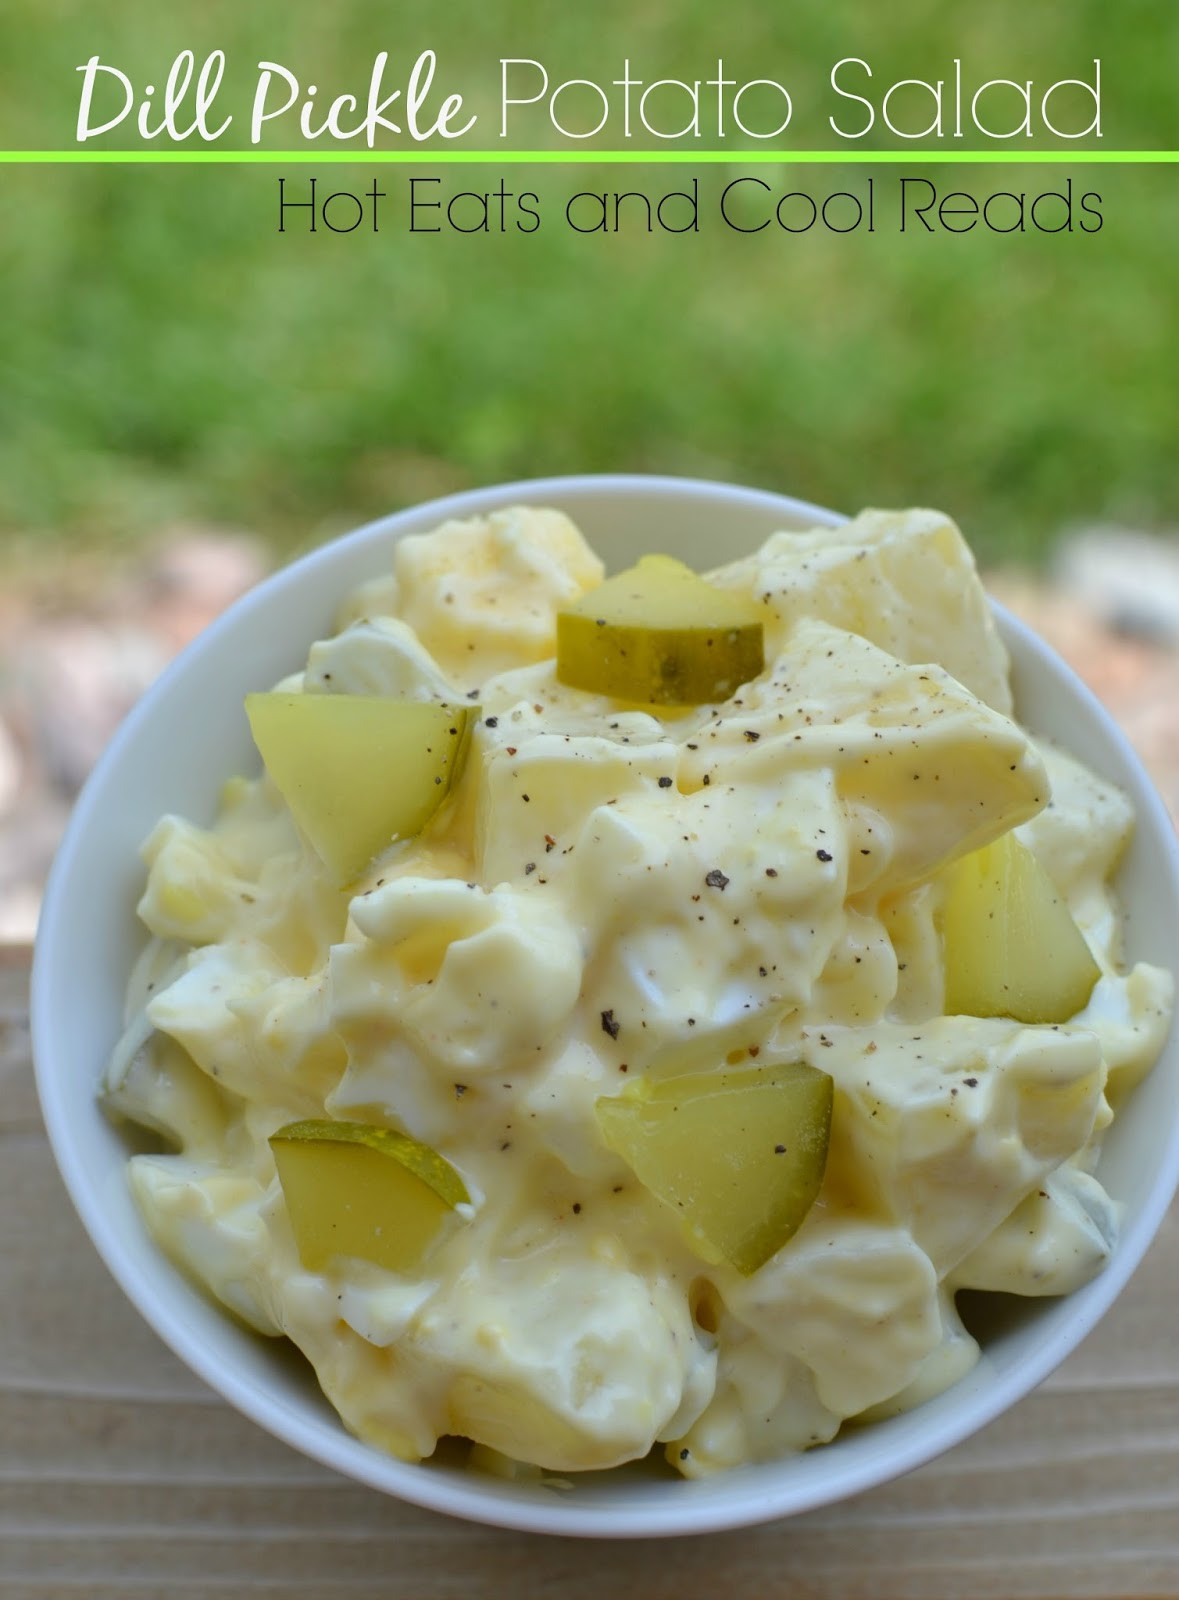 Dill Pickle Potato Salad  Hot Eats and Cool Reads Dill Pickle Potato Salad Recipe